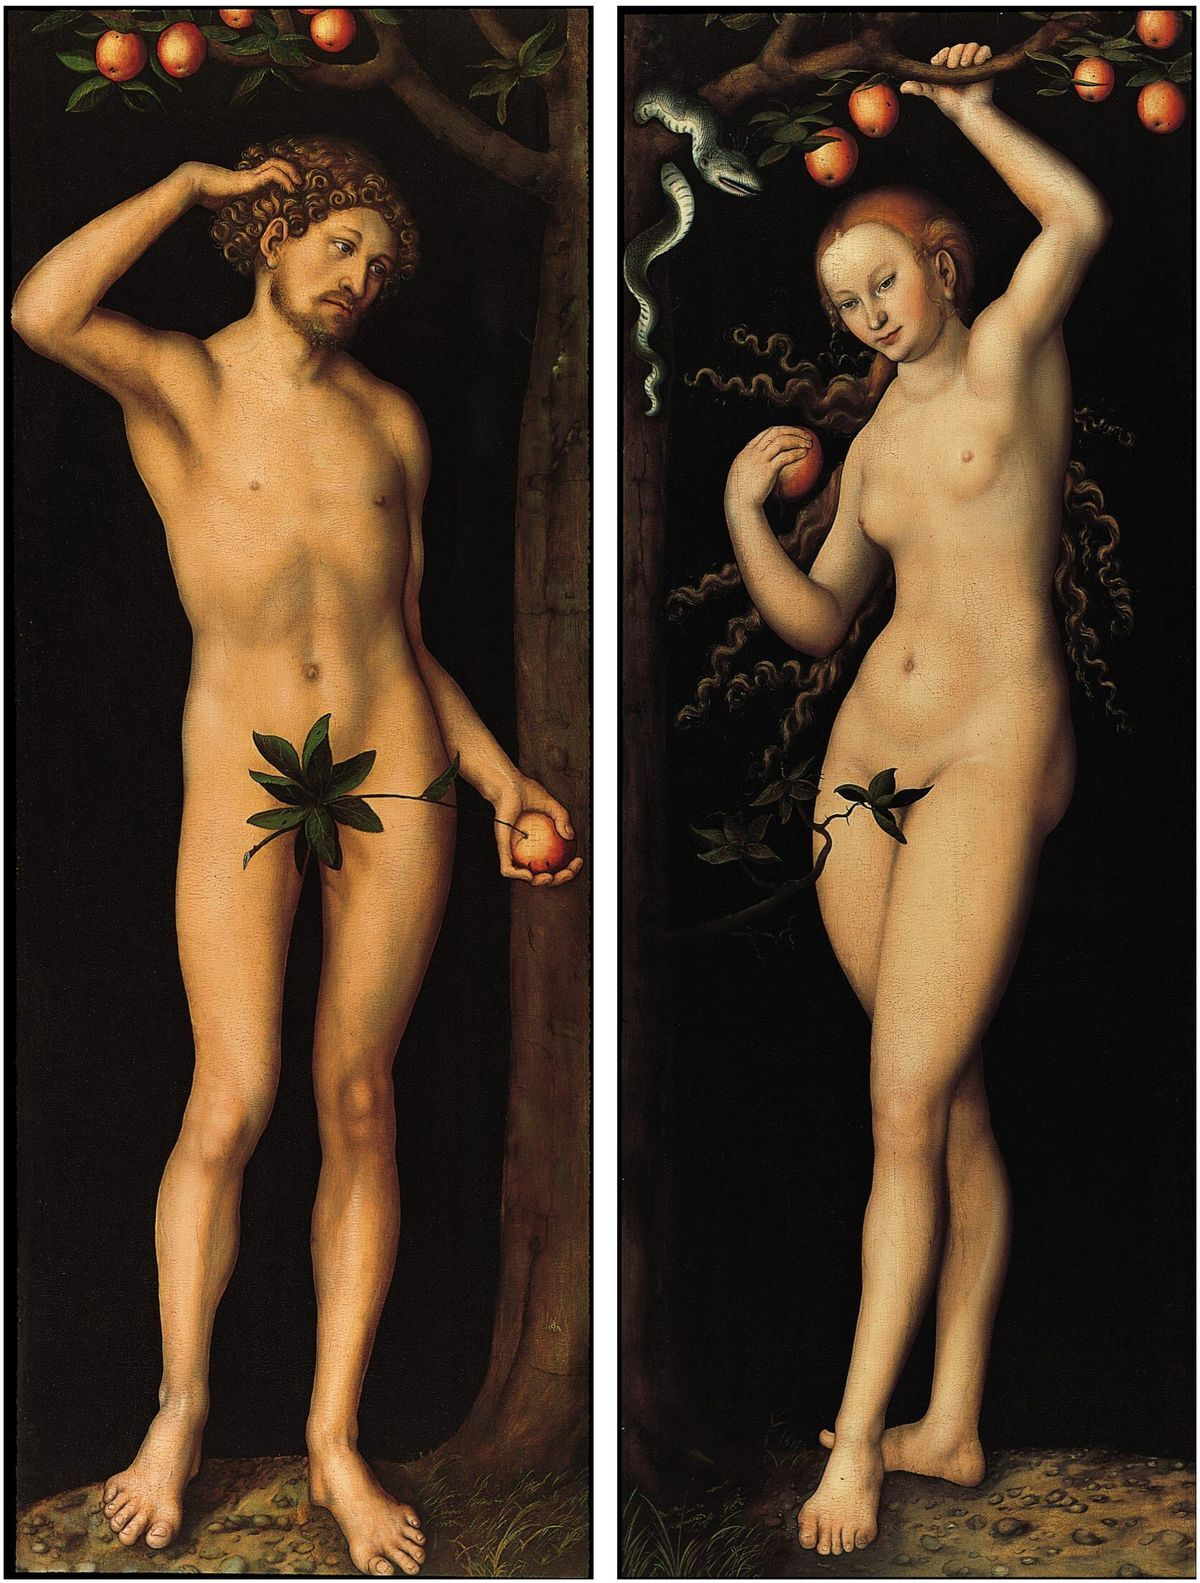 Lucas Cranach the Elder, Adam and Eve, circa 1530. Image via Wikimedia Commons.